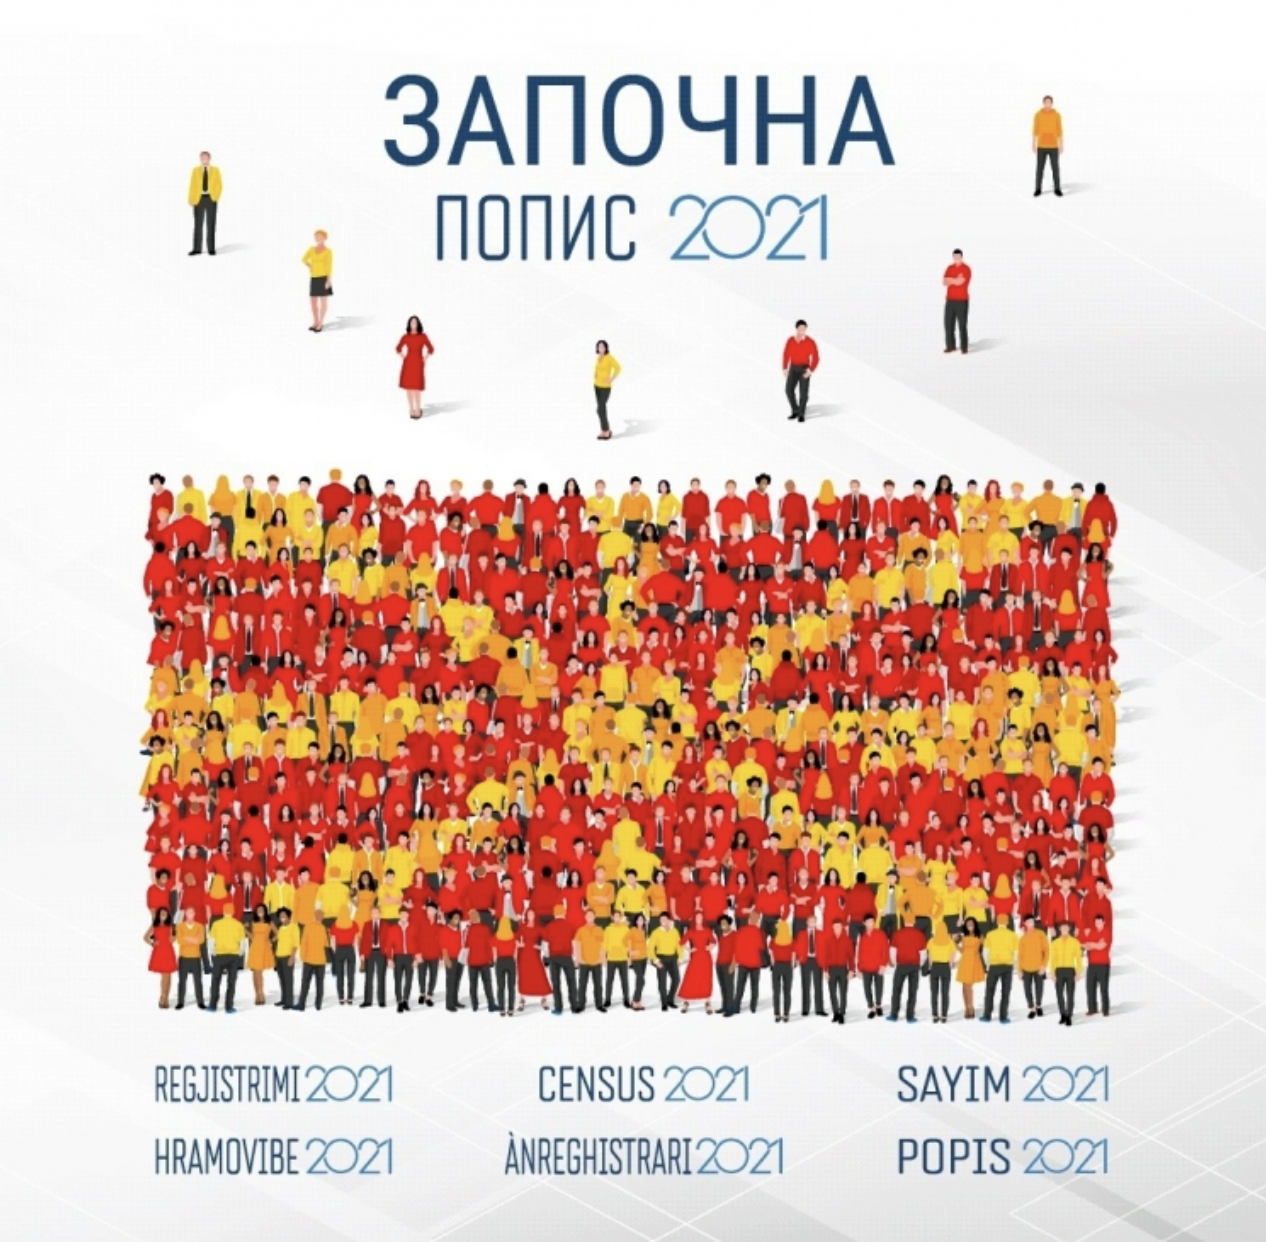 The population census is carried out at a satisfactory pace and without problems